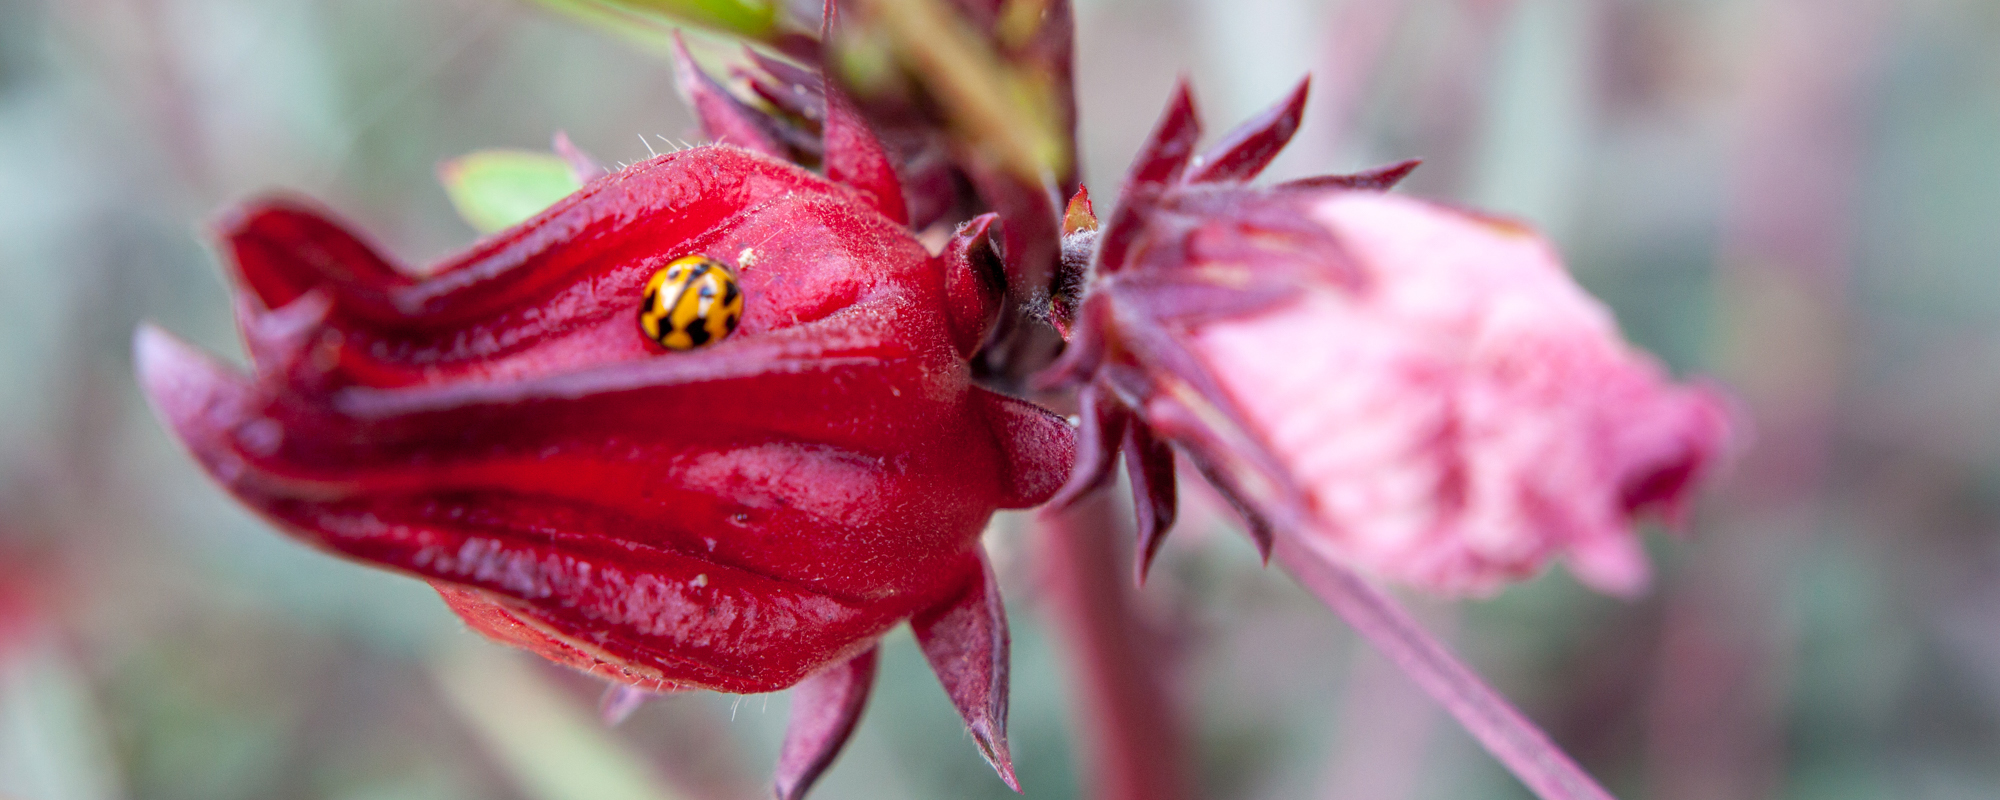 rosella-flower-bug